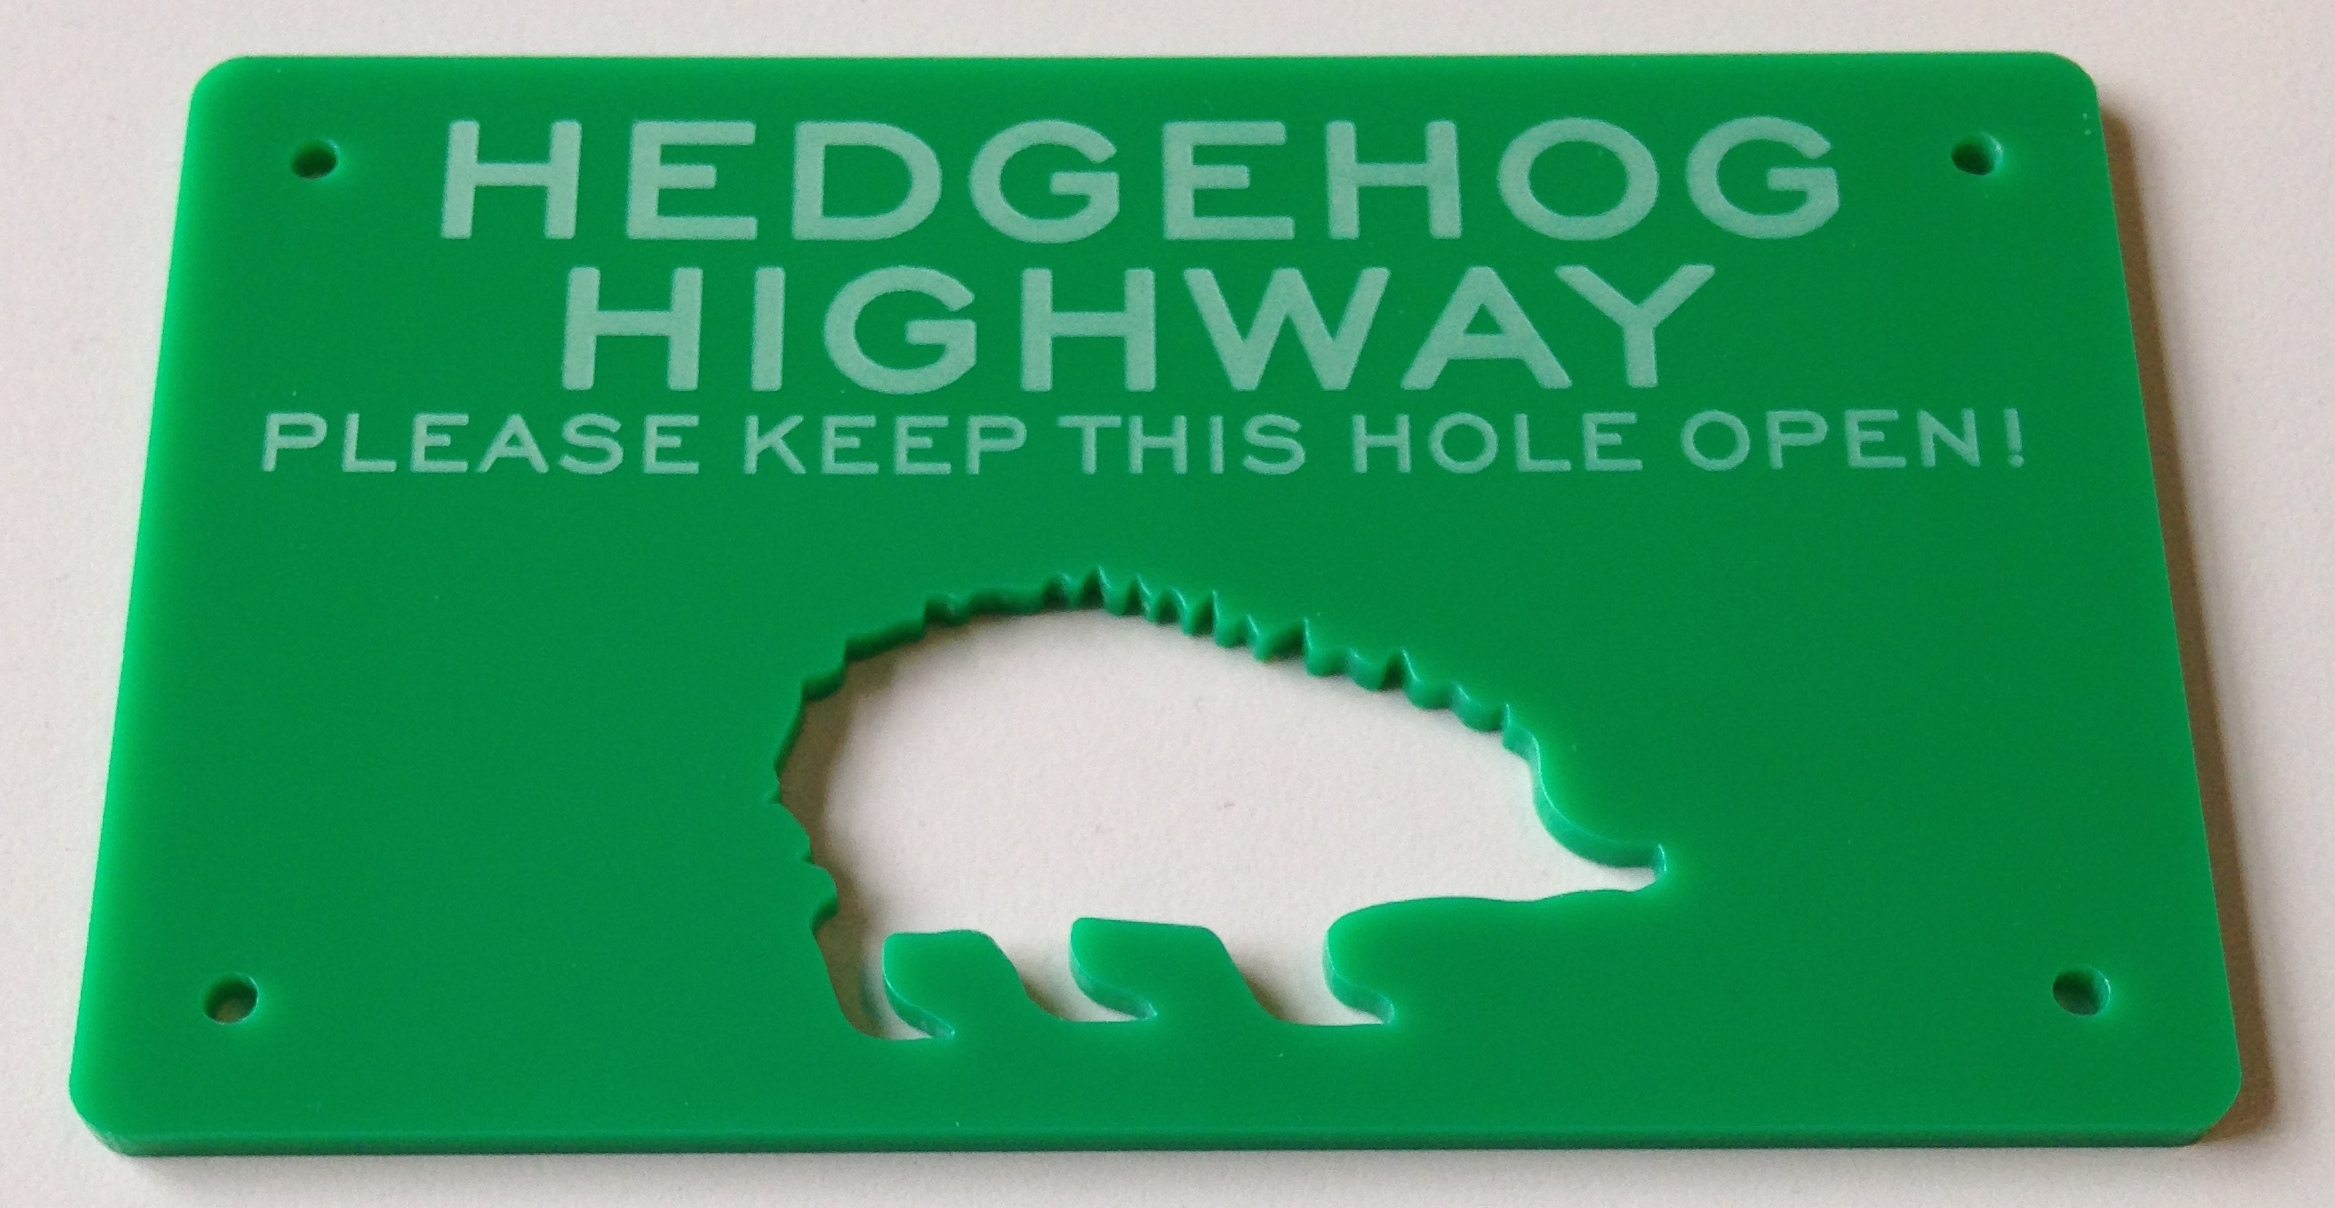 Get this free hedgehog highway marker in your goodie bag - made from recycled plastic - pin it to your fence to mark your hedgehog highway for posterity